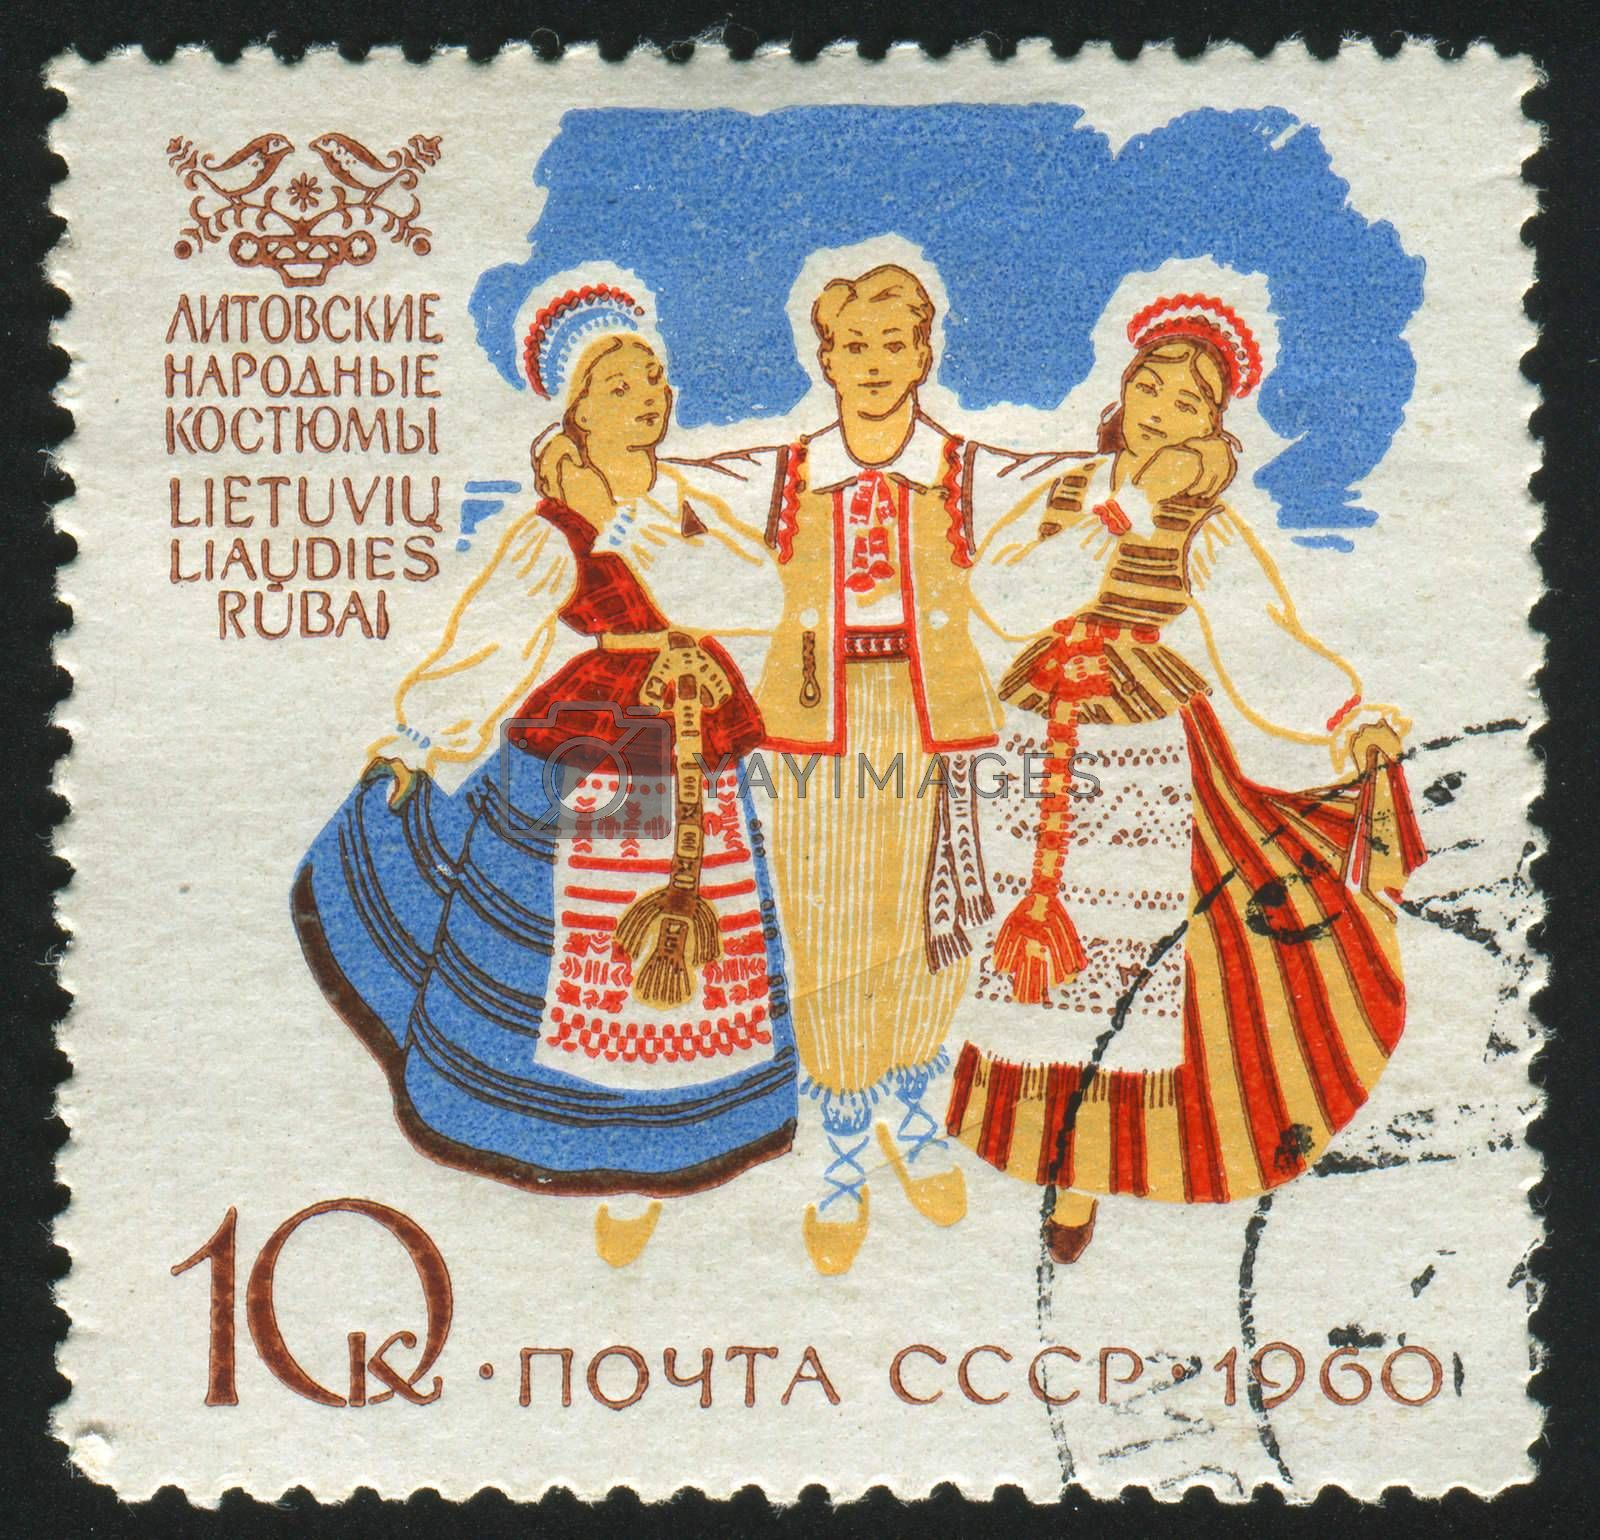 RUSSIA - CIRCA 1960: stamp printed by Russia, shows traditional costume, circa 1960.